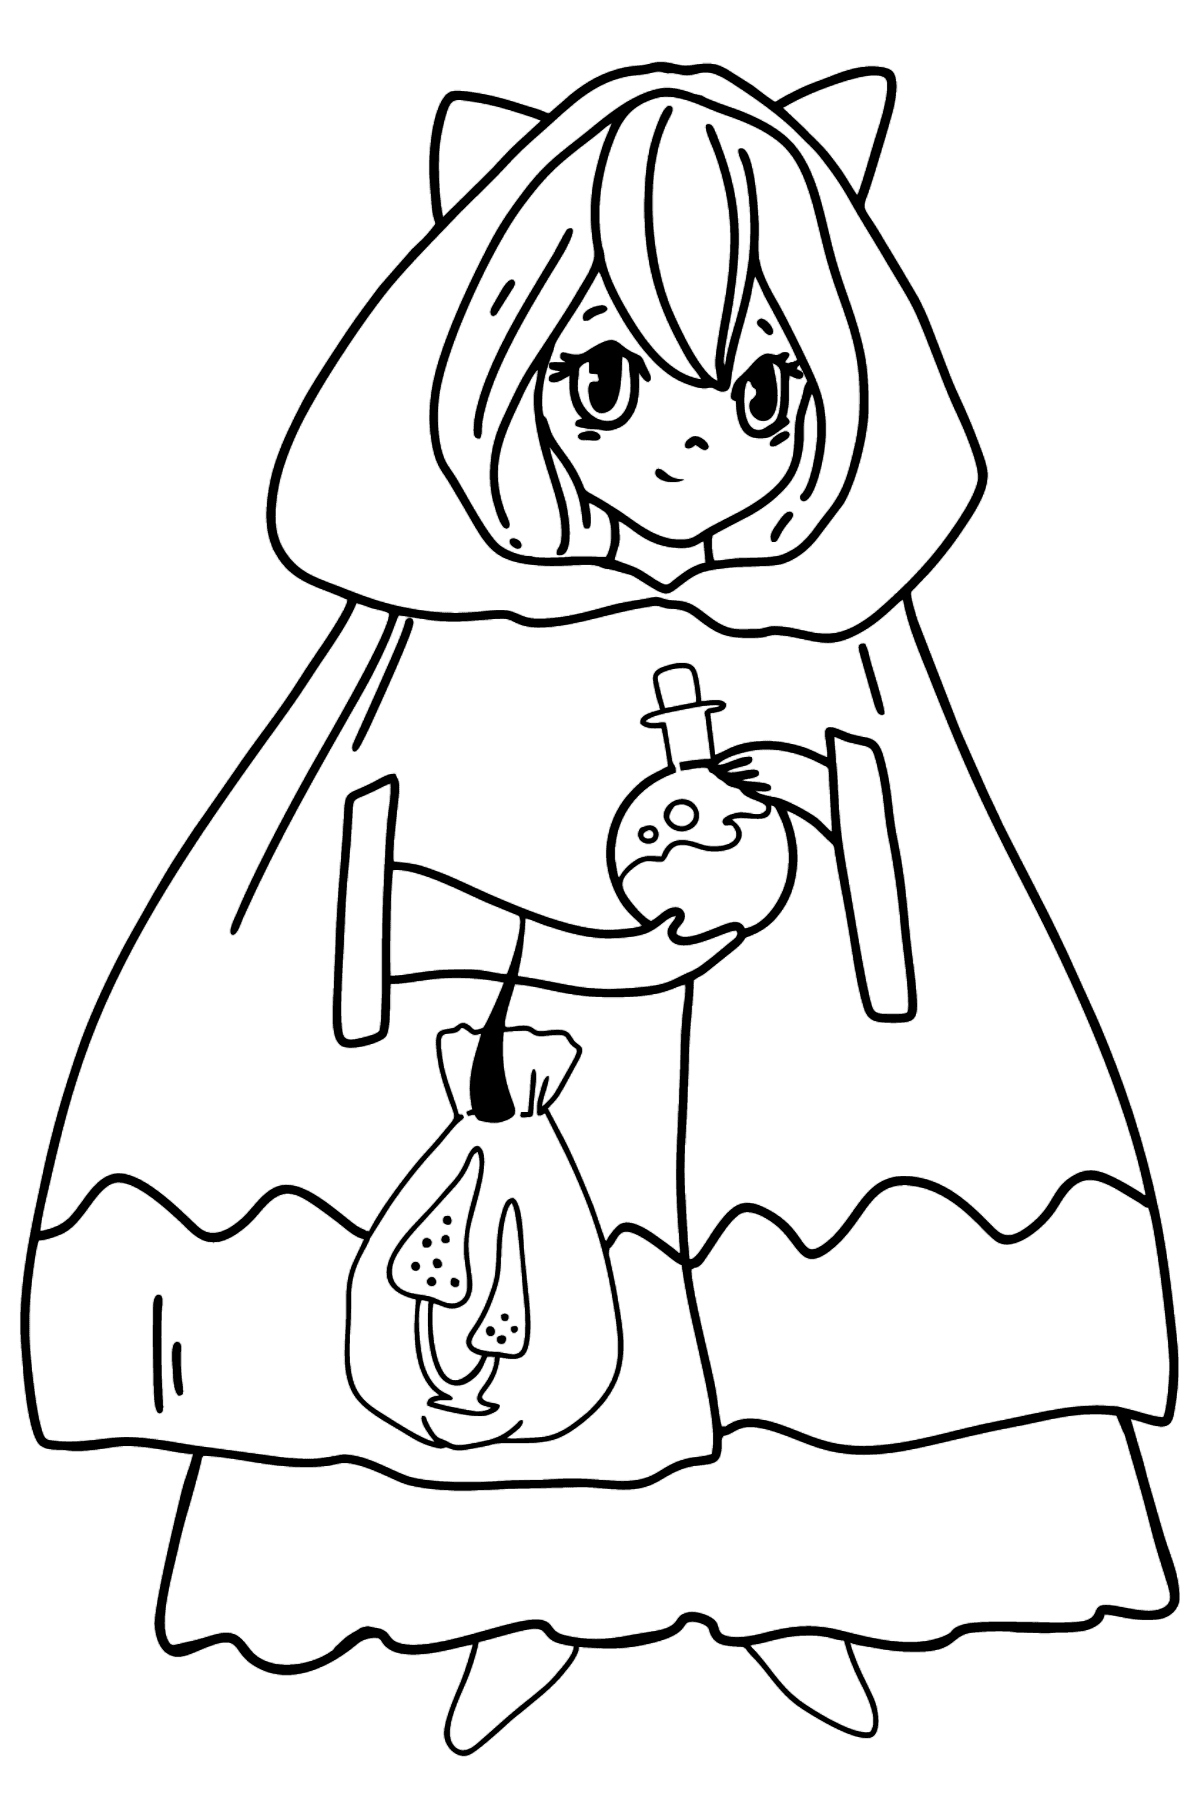 Anime Girl Witch Coloring Pages - Coloring Pages for Kids